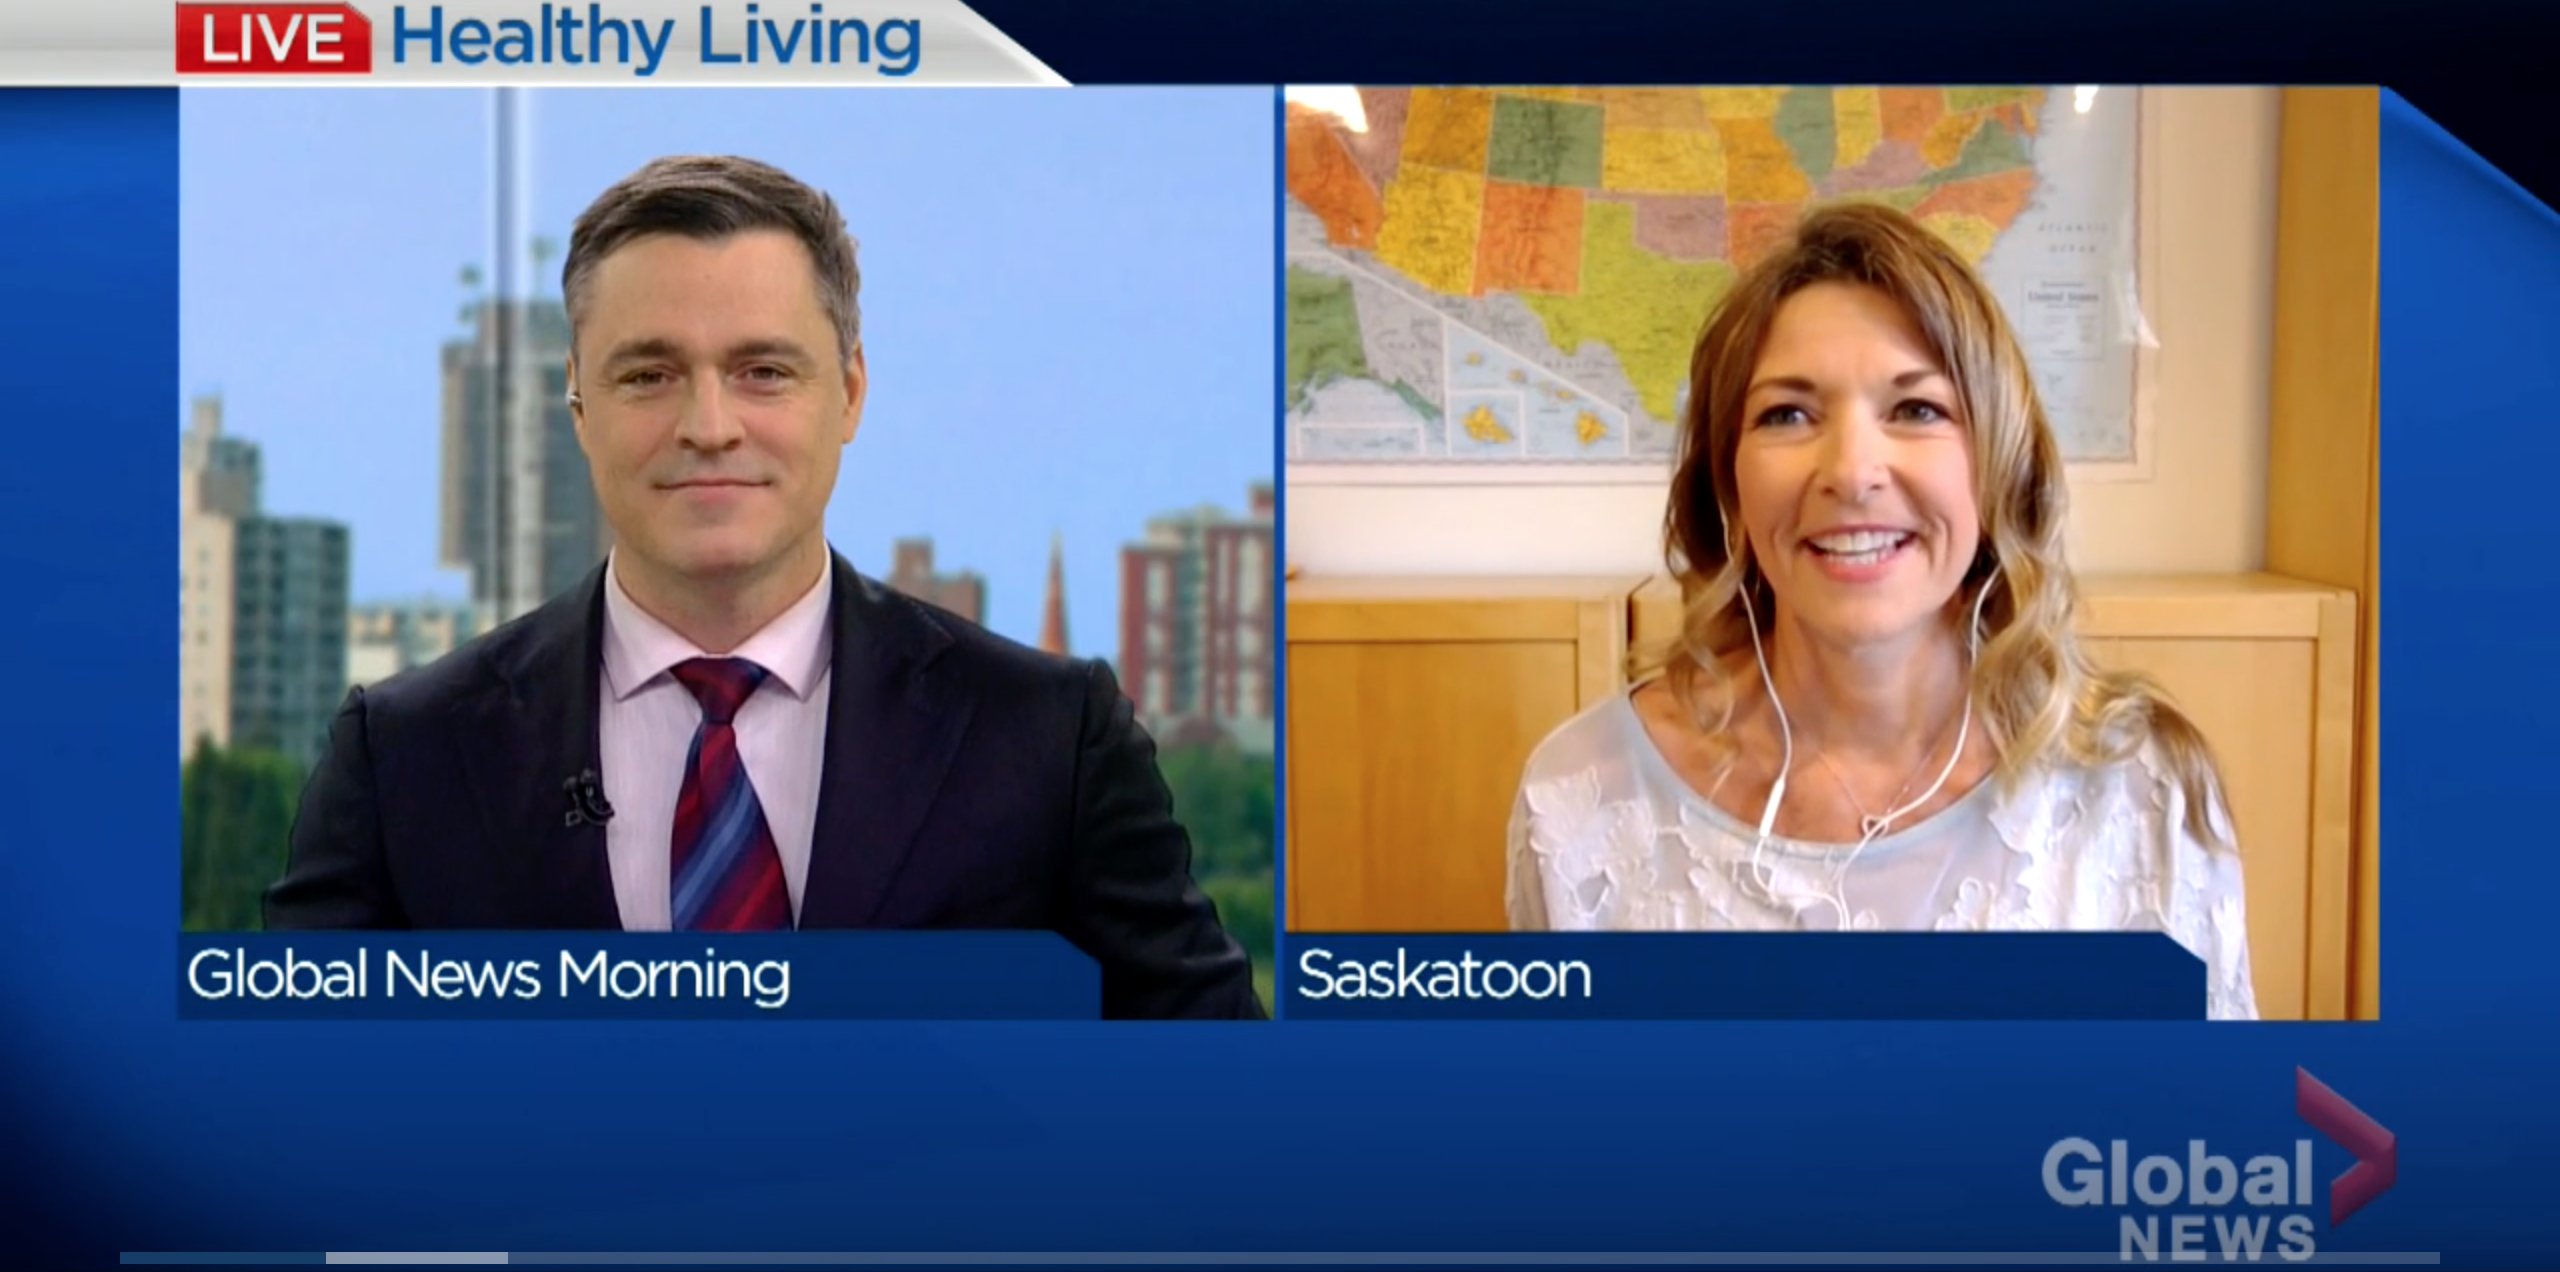 Dr. Jacqui Fleury on Spring Allergies Global News Healthy Living interview